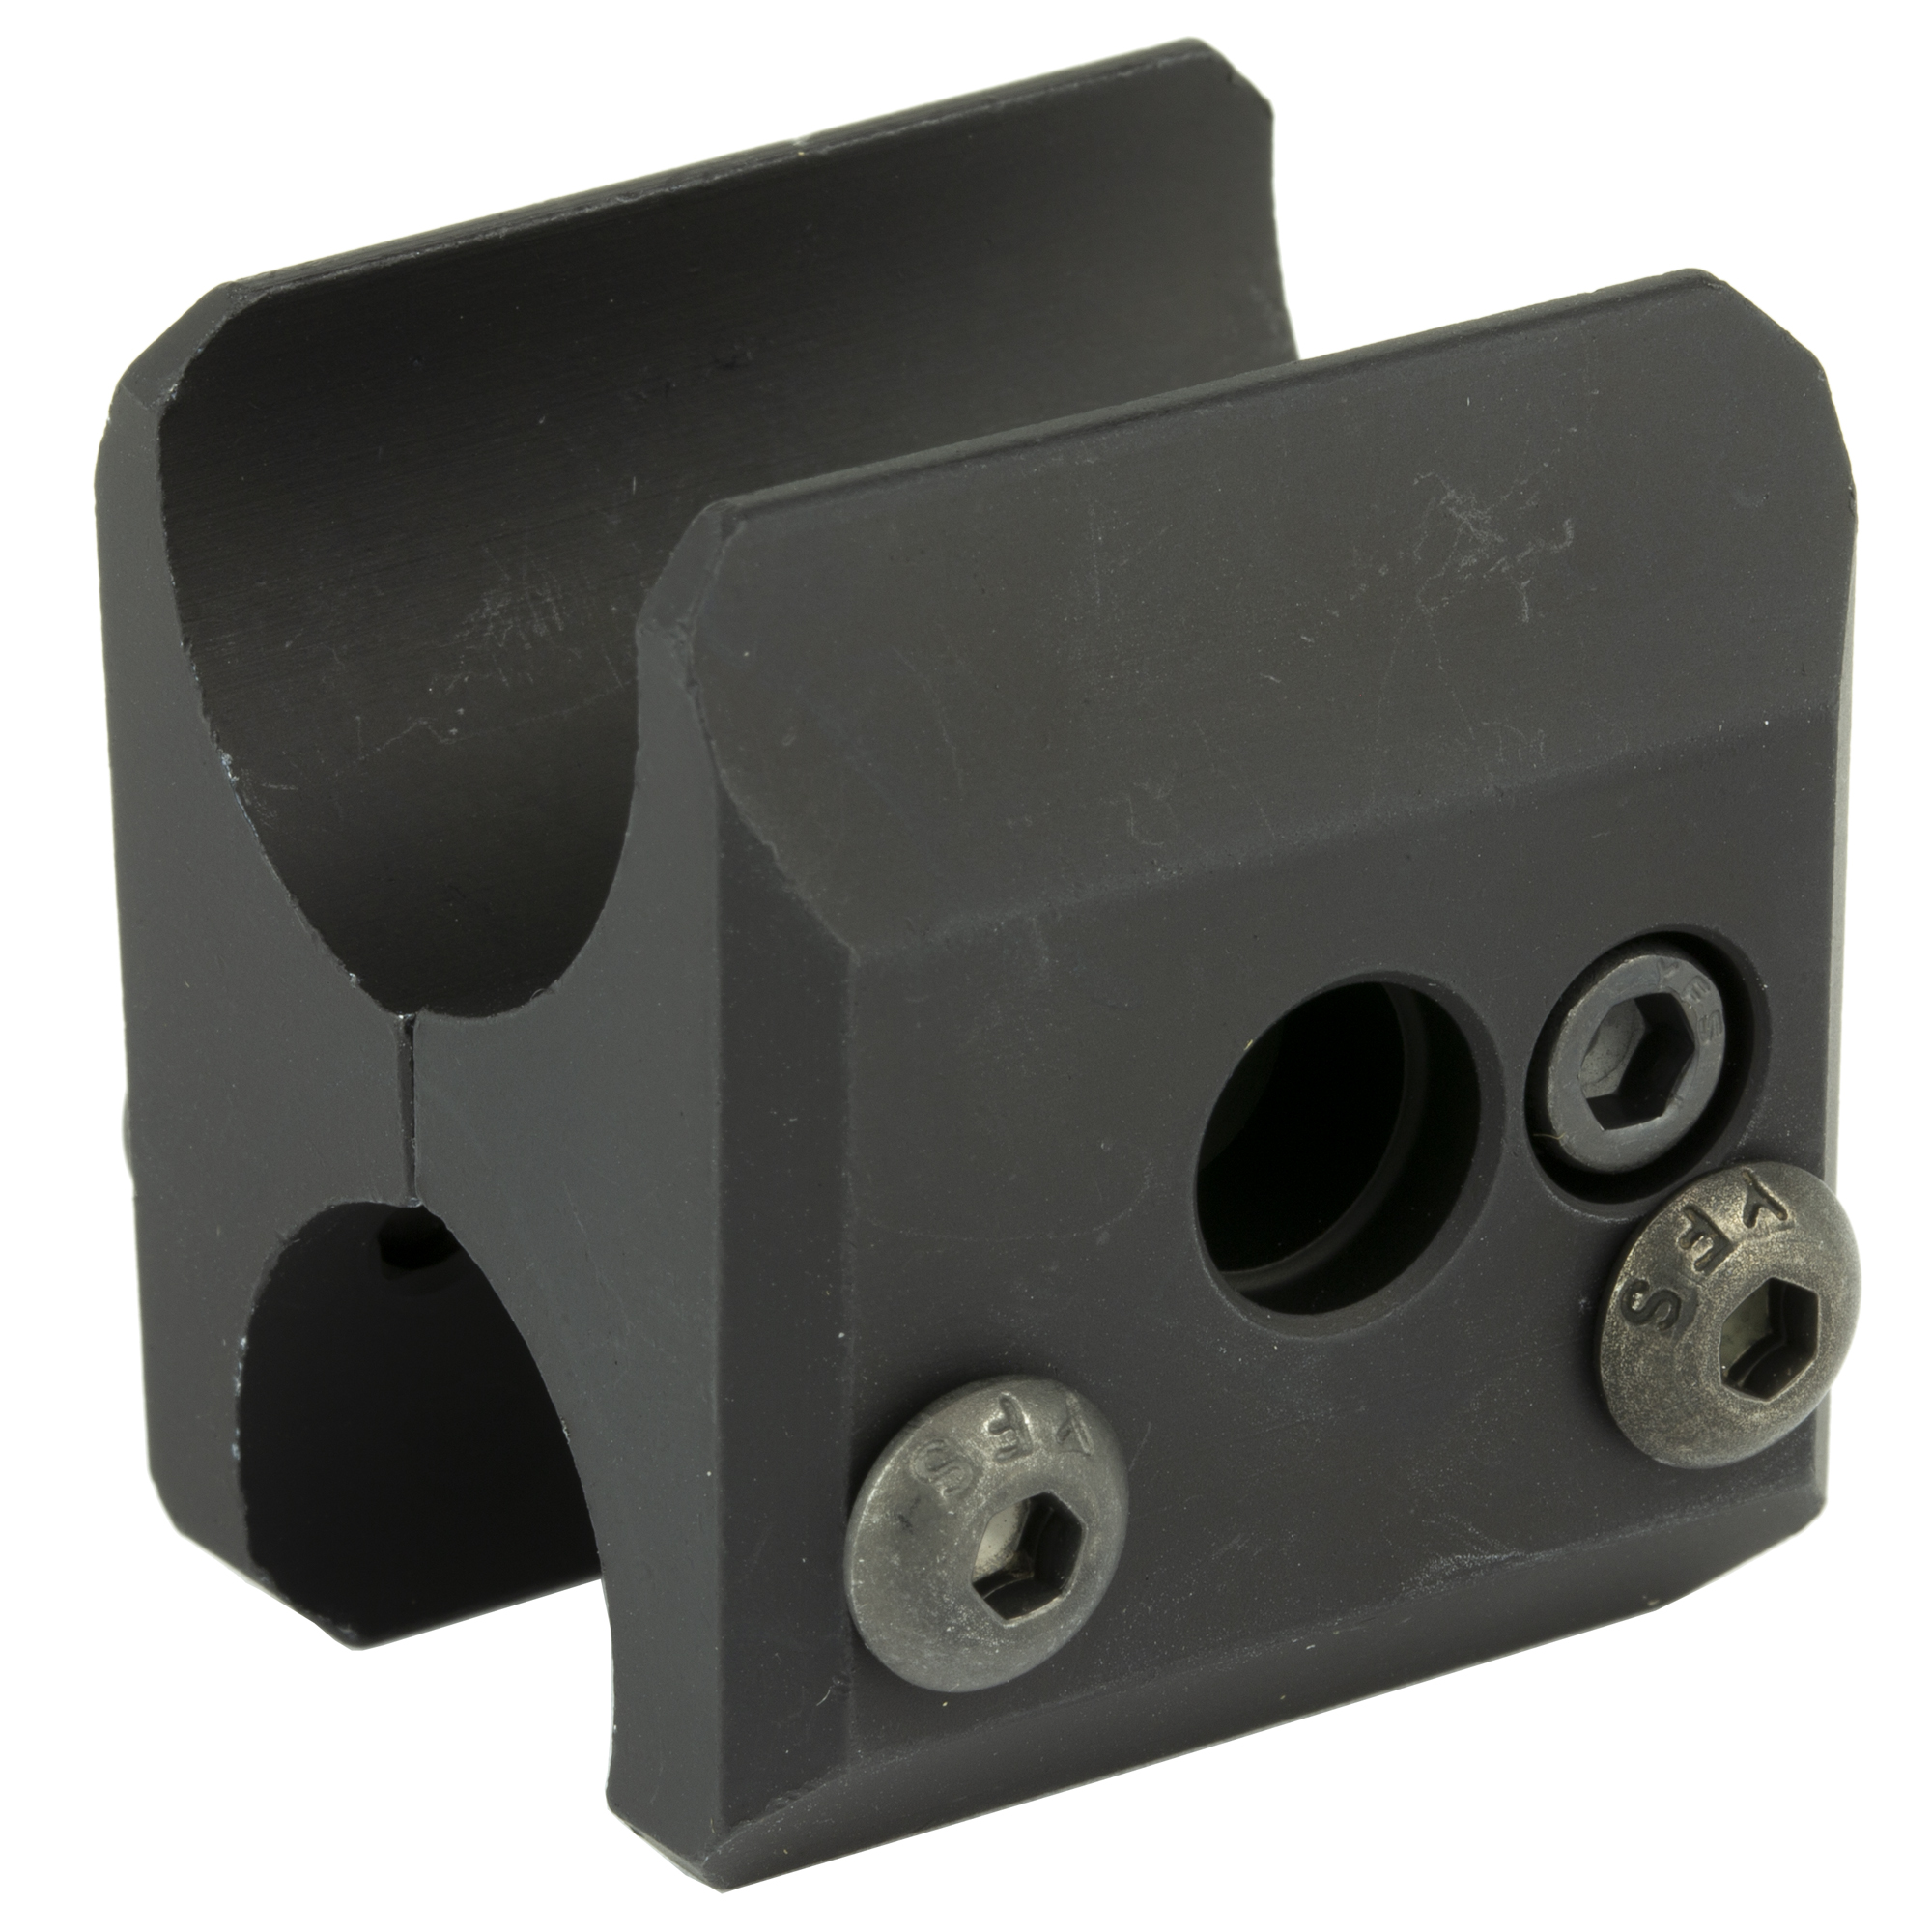 """The magazine clamp can be used to more securely retain aftermarket or factory magazine extensions"""" while at the same time offering flexible mounting options near the shotgun muzzle. This clamp accepts a push-button quick release sling swivel."""